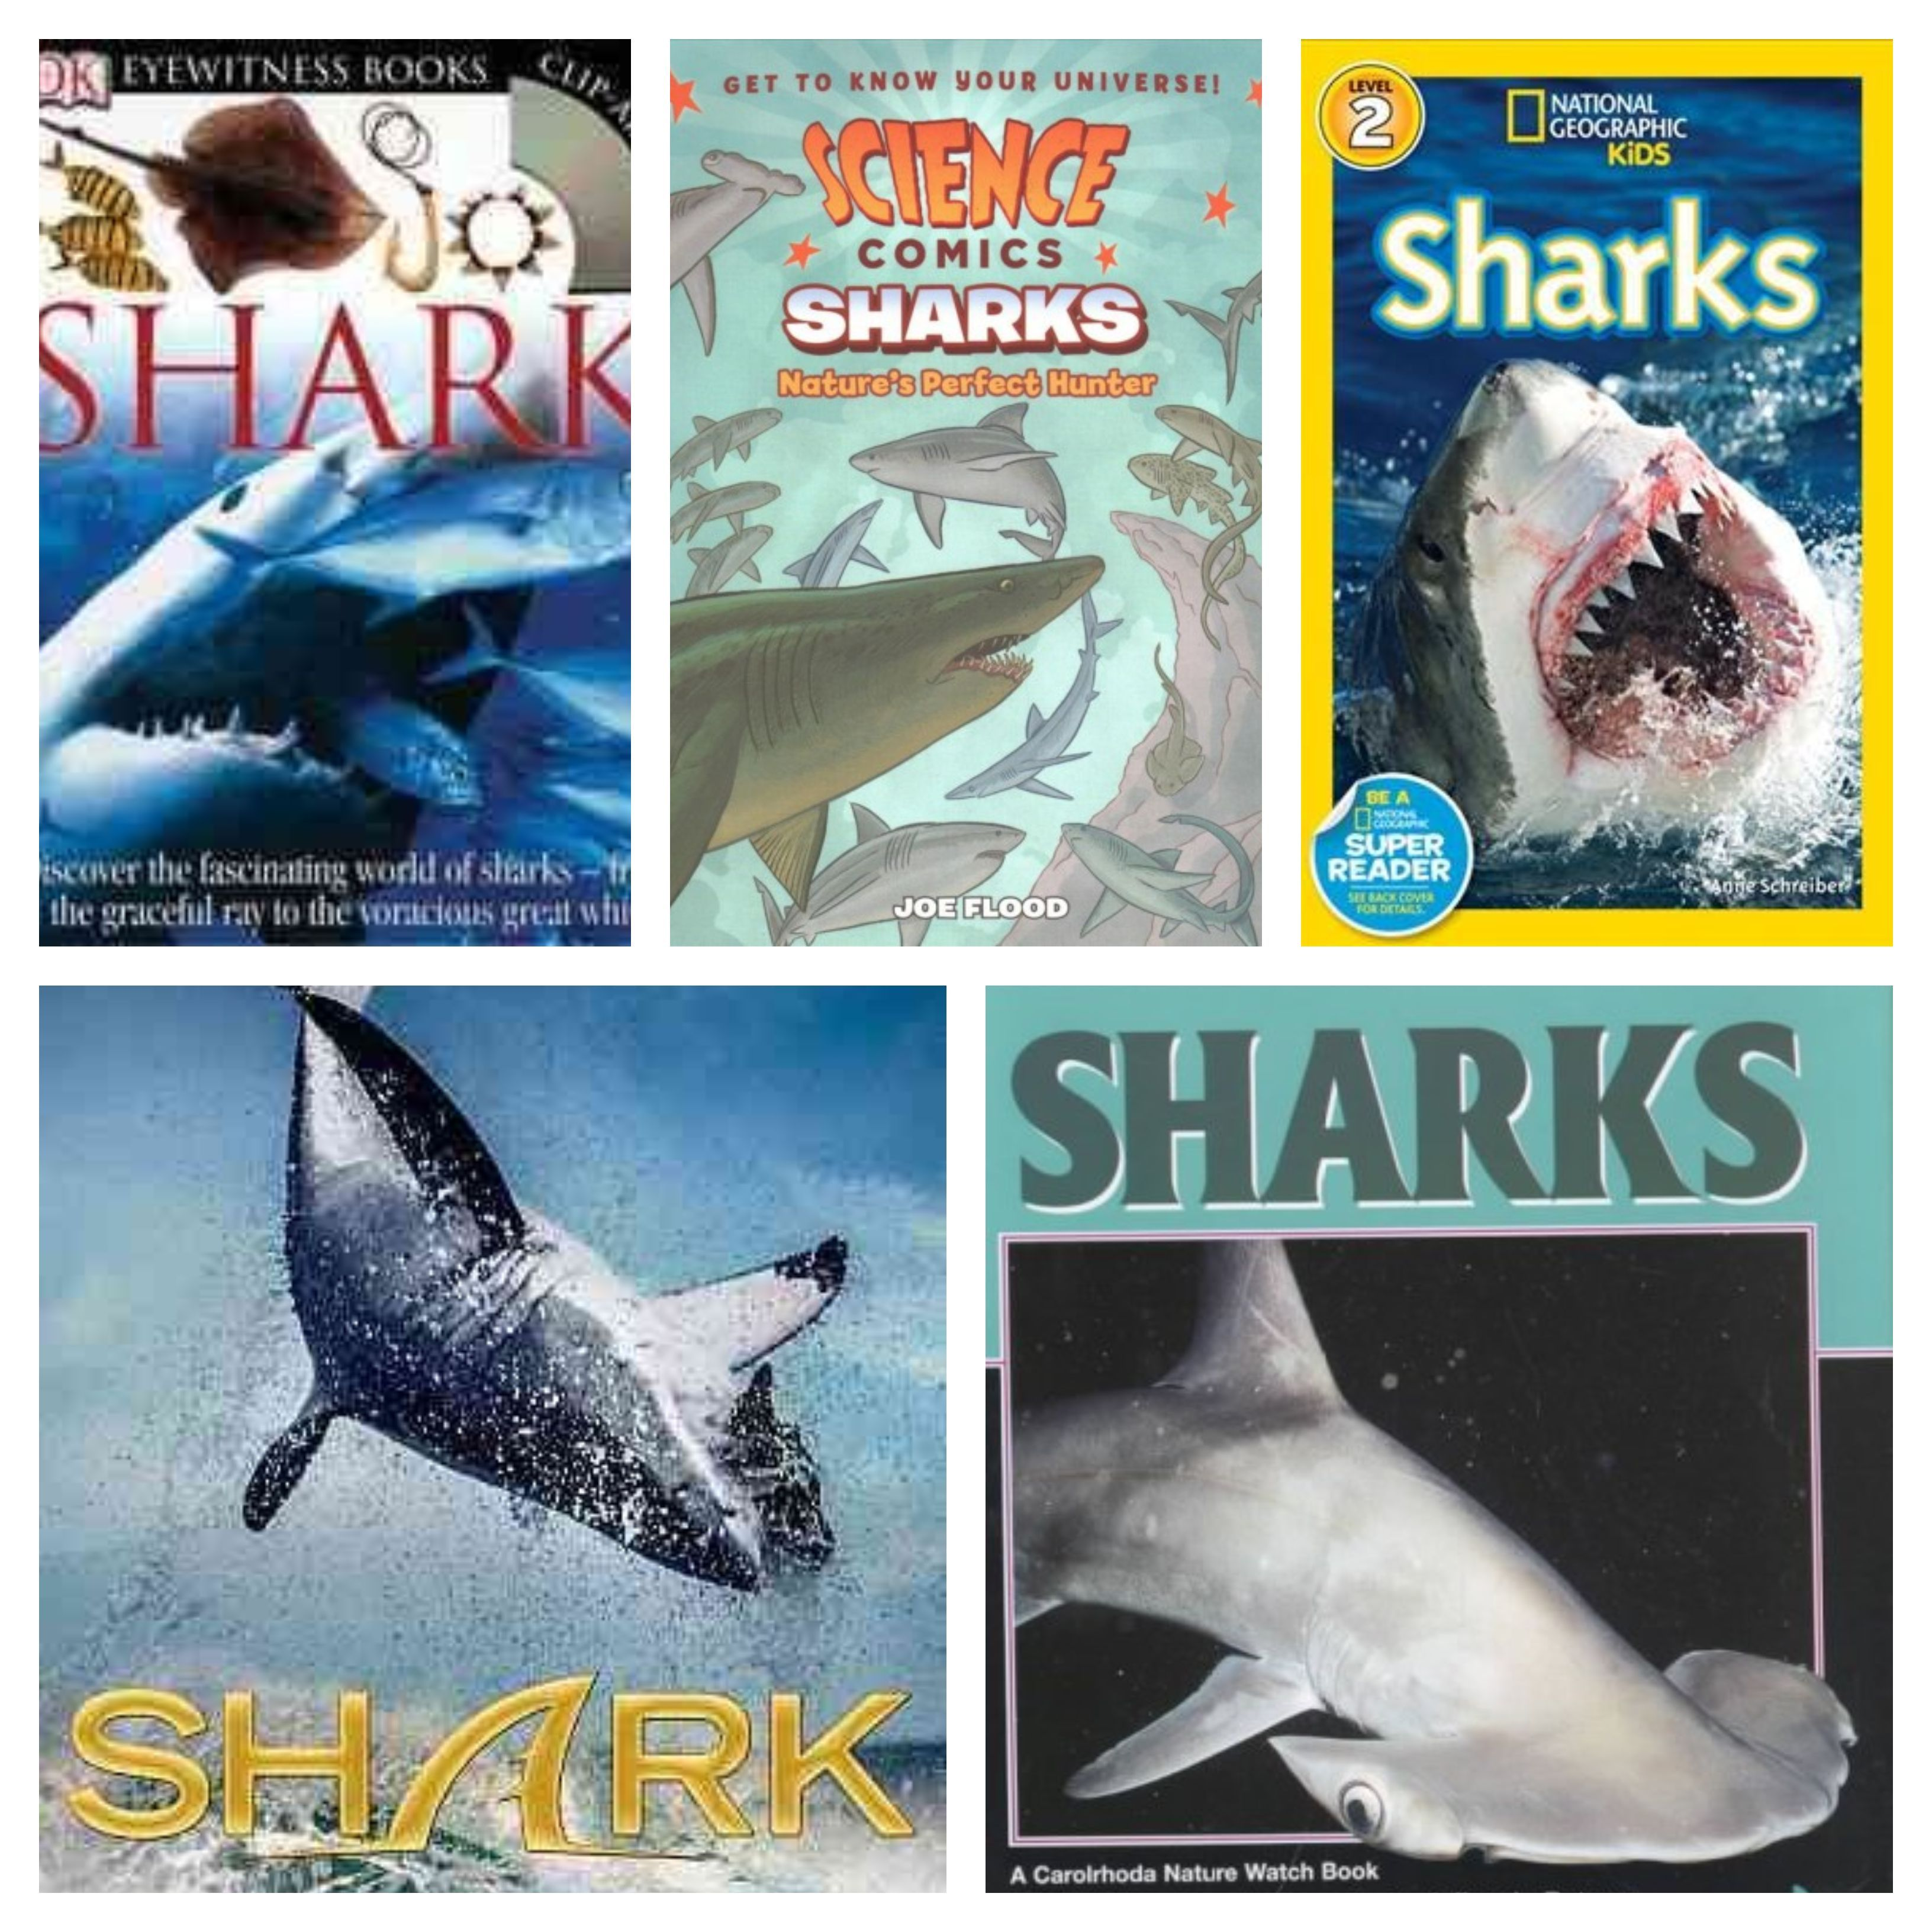 Those Of You Who Follow The Discovery Channel Know That We Are In The Midst Of The 30th Anniversary Of Shark Week C Dauphin County Fun Facts County Library